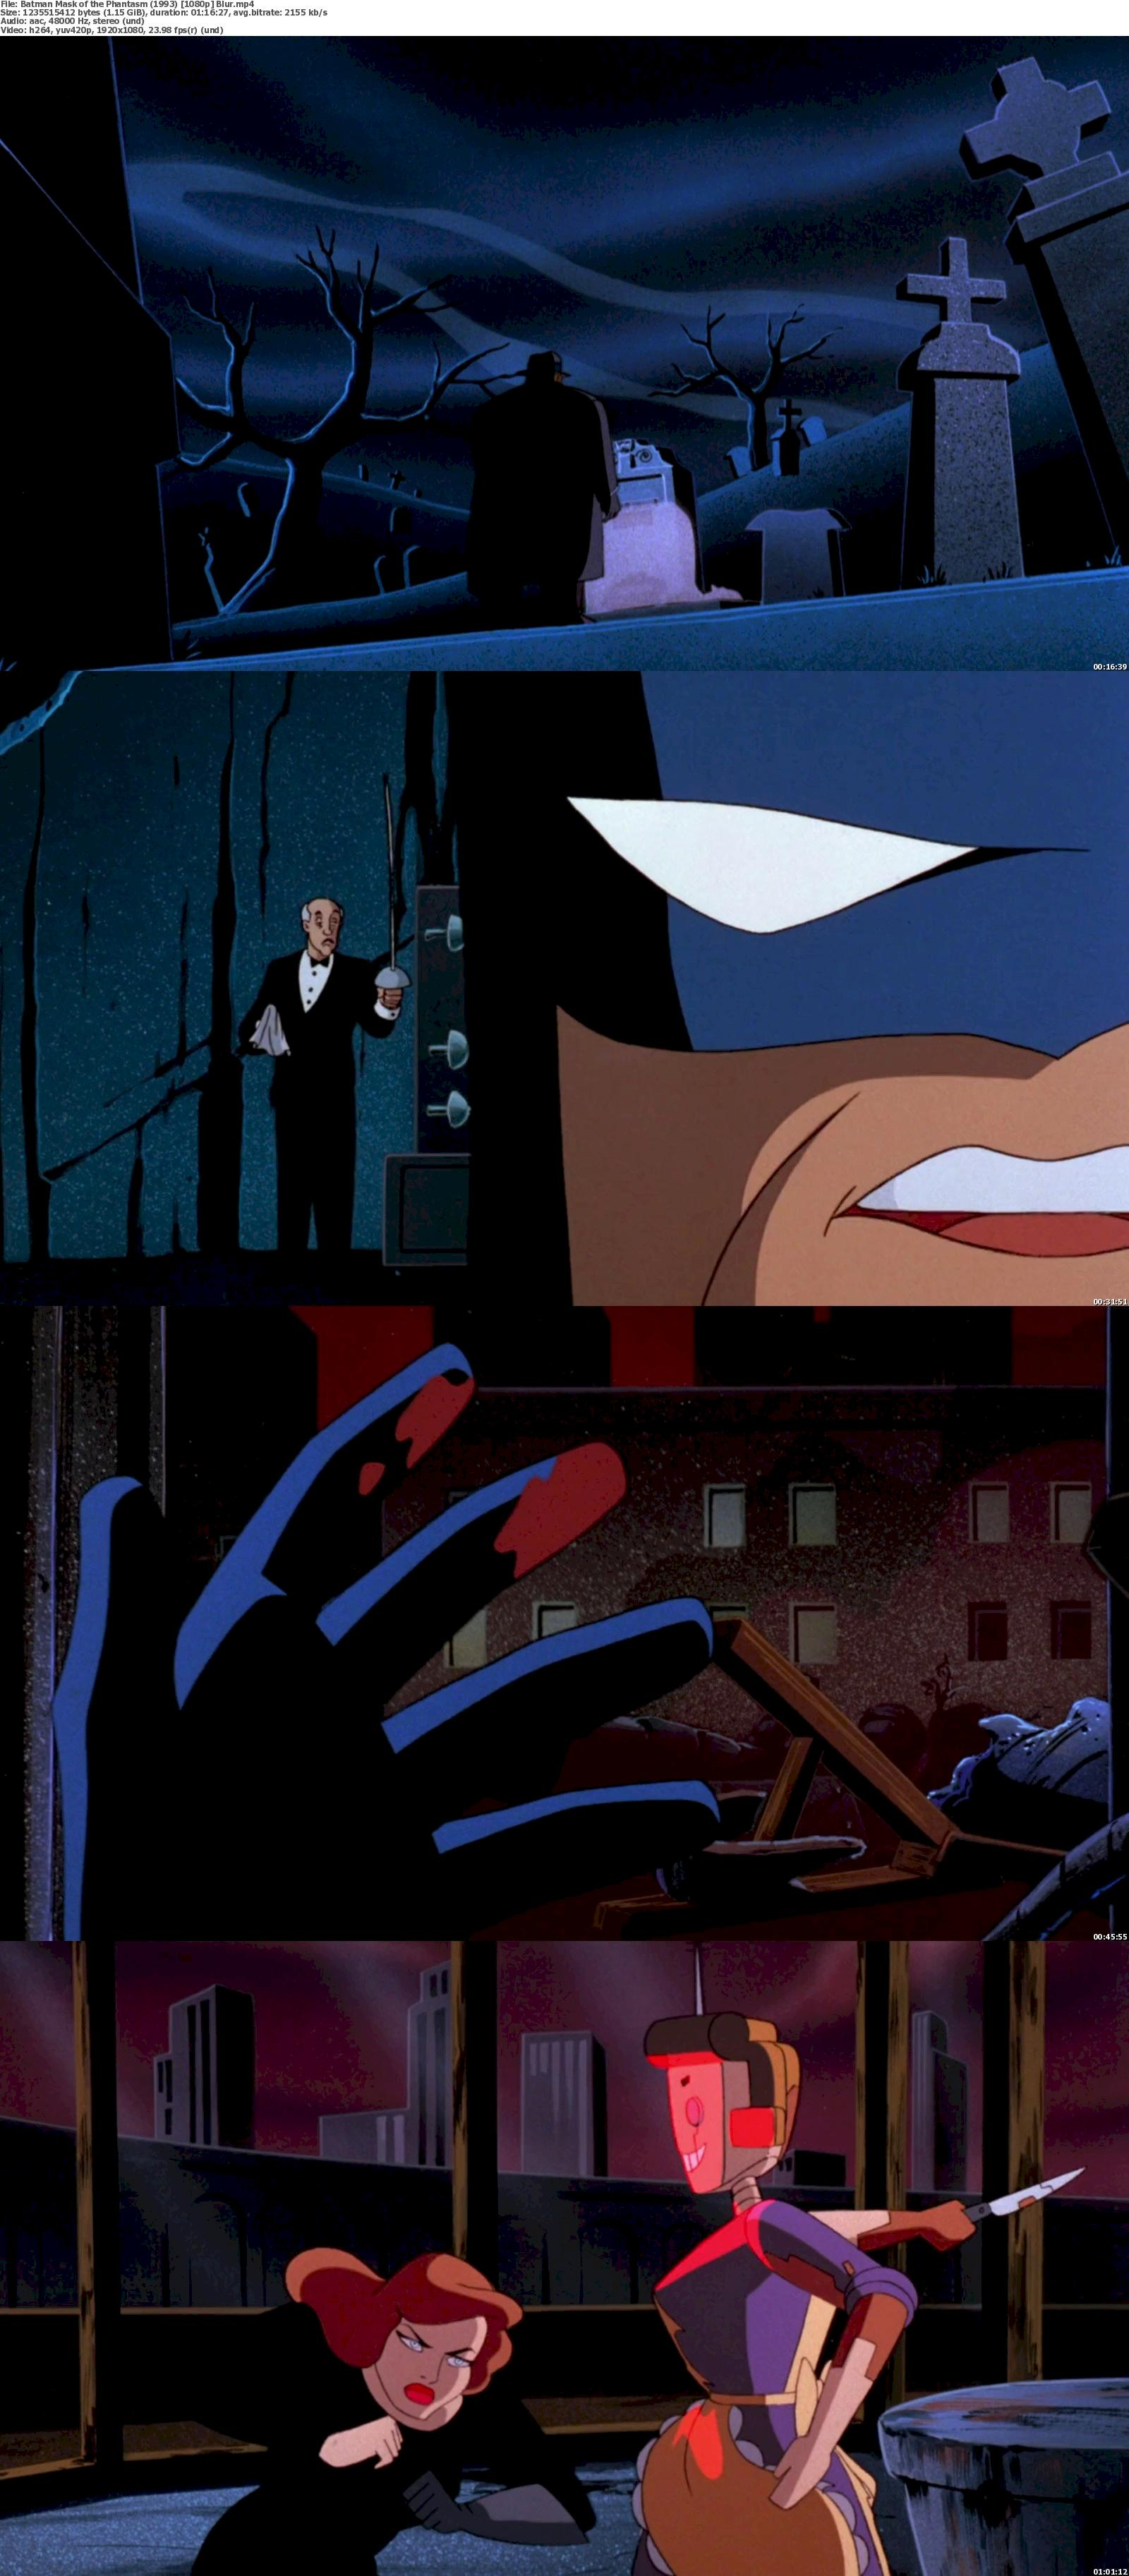 Batman: Mask of the Phantasm (1993) 720p & 1080p Bluray Free Download 1080p Screenshot